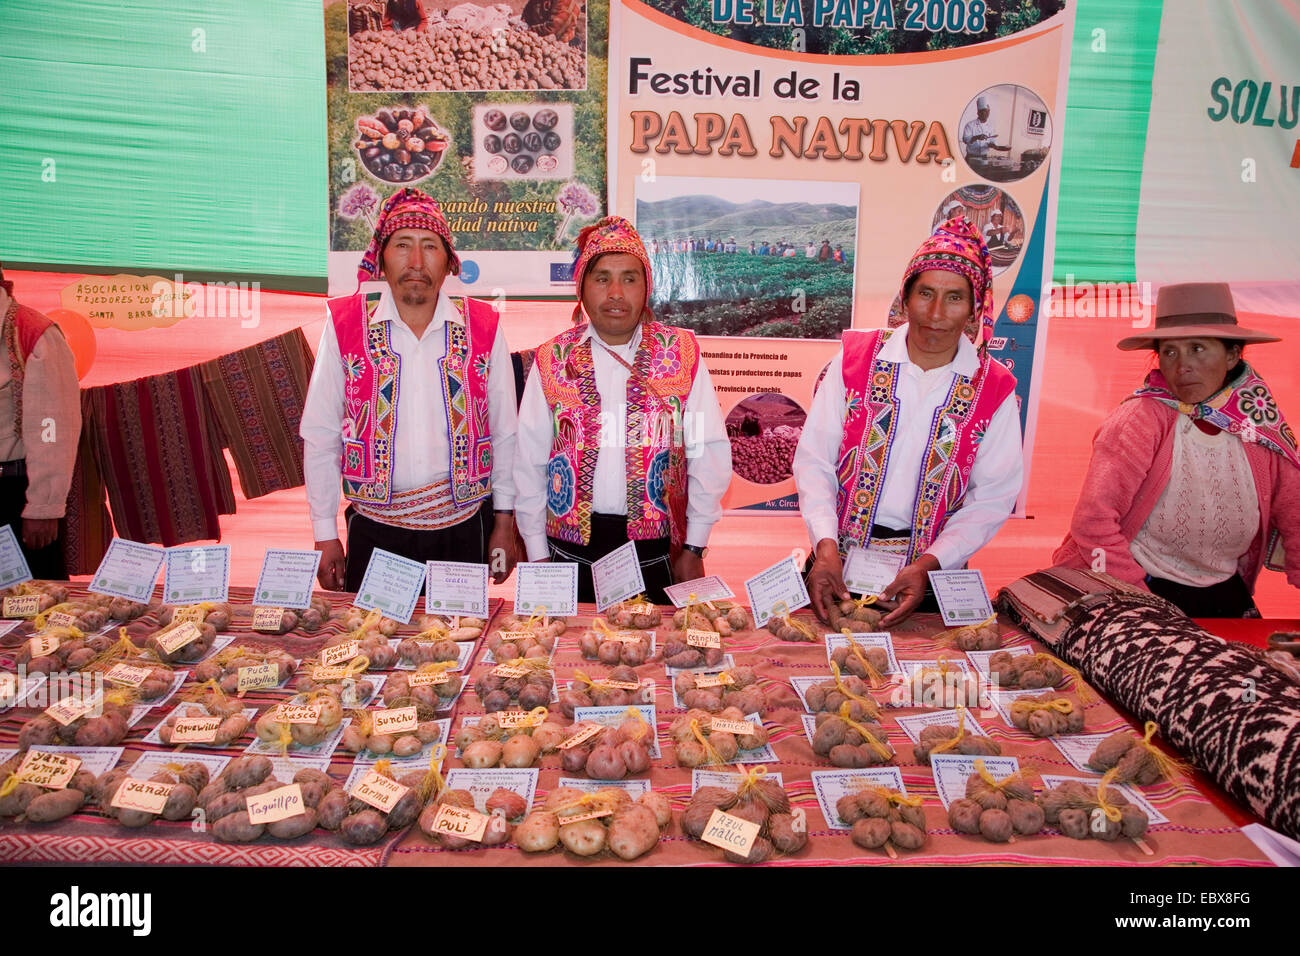 ceremoniously dressed greengrocers selling native potatoes at a traditional festival, Peru, Cuzco Stock Photo